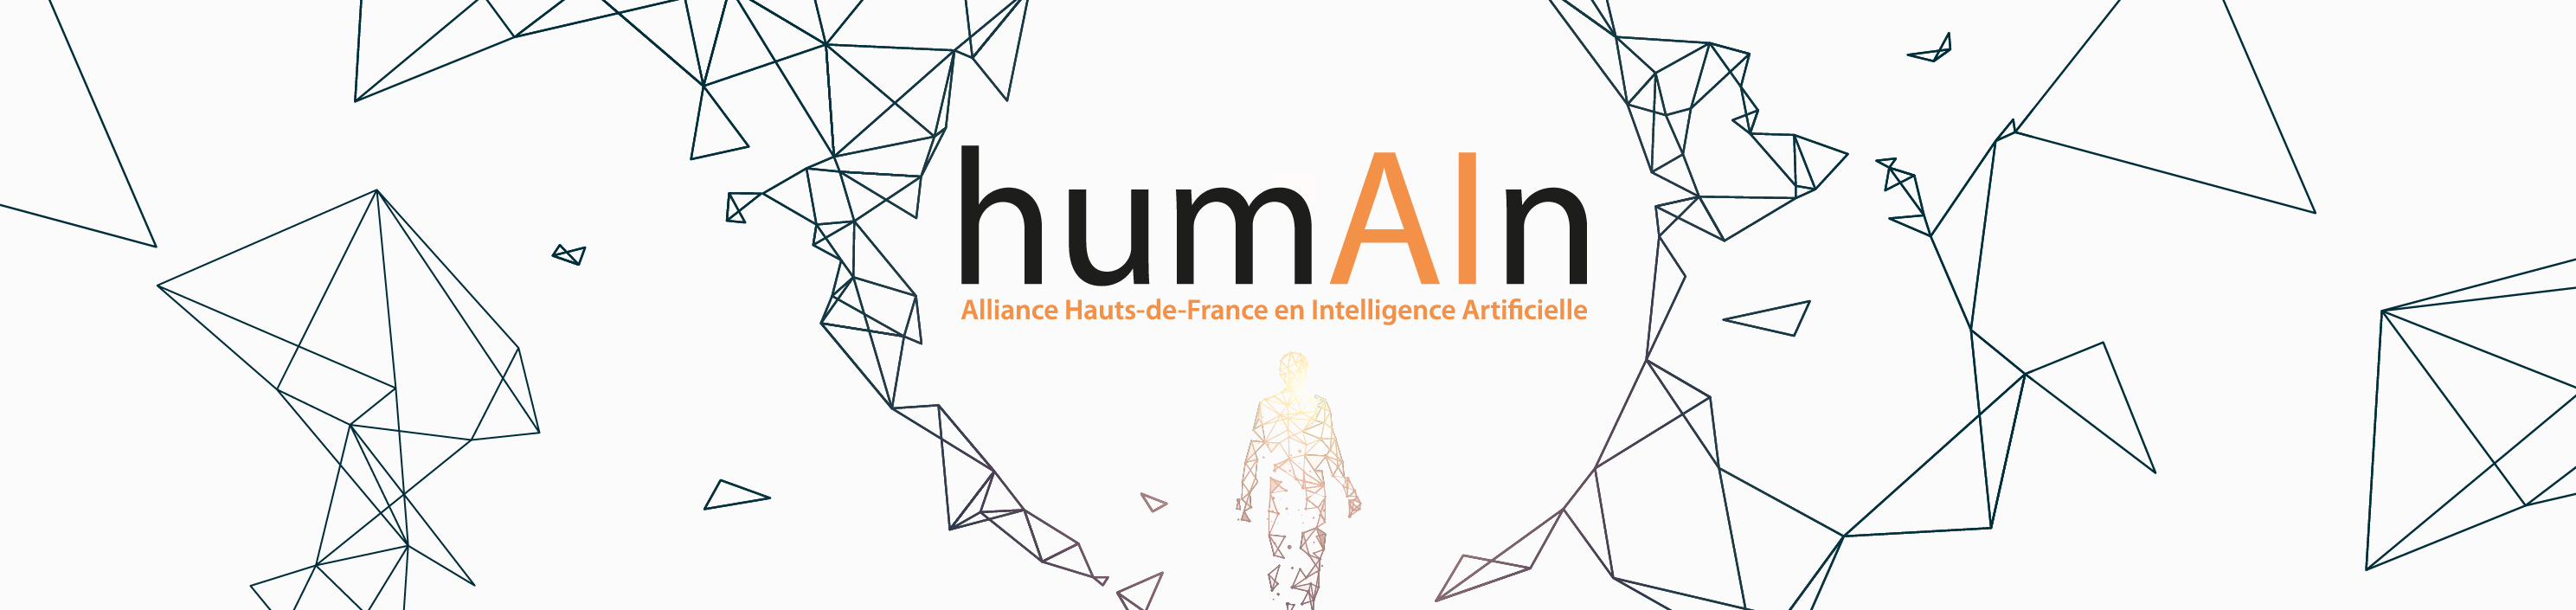 humAIn : Alliance Hauts-de-France en Intelligence Artificielle